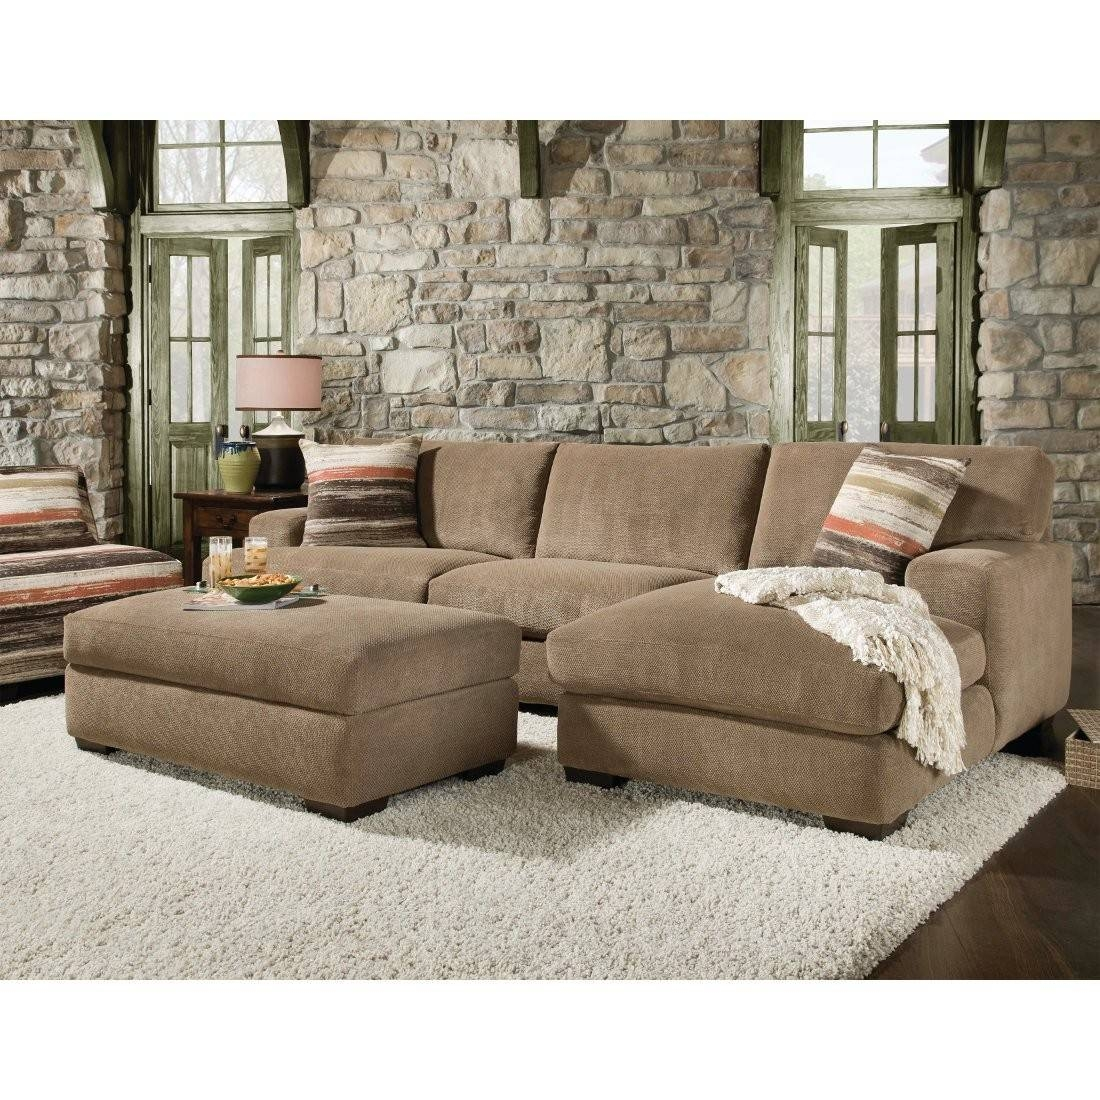 2 Piece Sectional Sofa With Chaise Design | Homesfeed For Sectional Sofa With 2 Chaises (View 5 of 30)